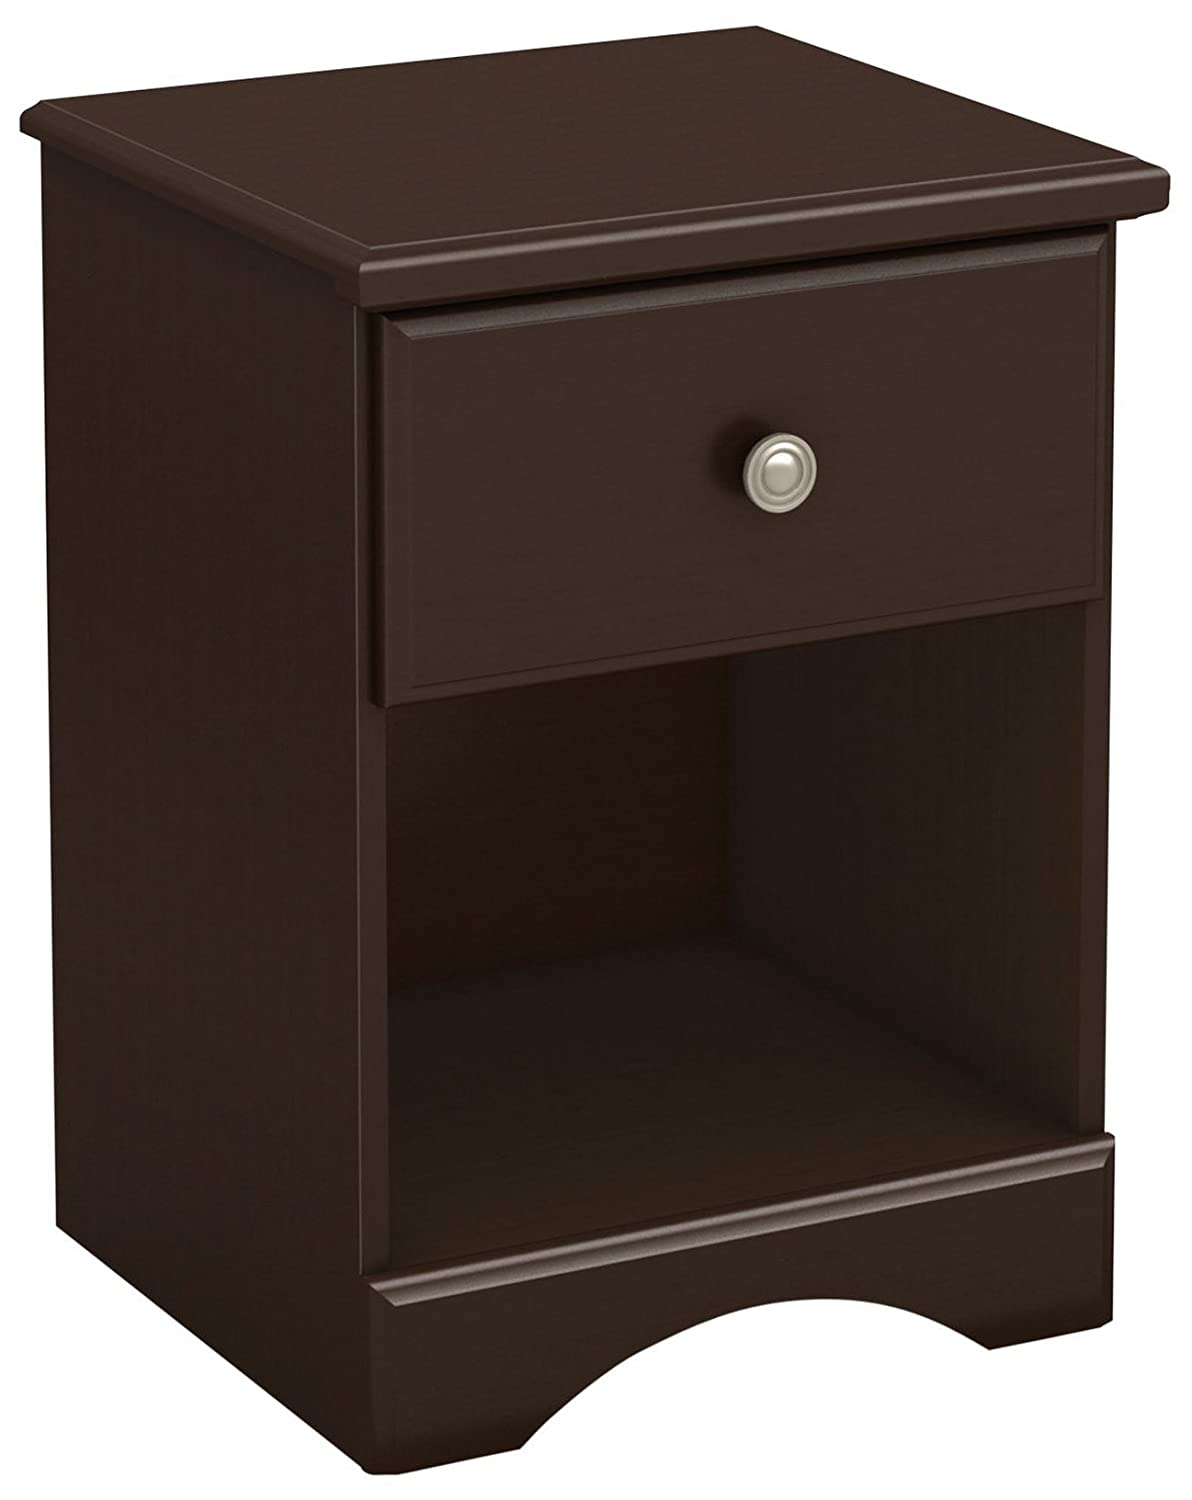 South Shore Furniture Morning Dew Night Stand, Chocolate 9016062